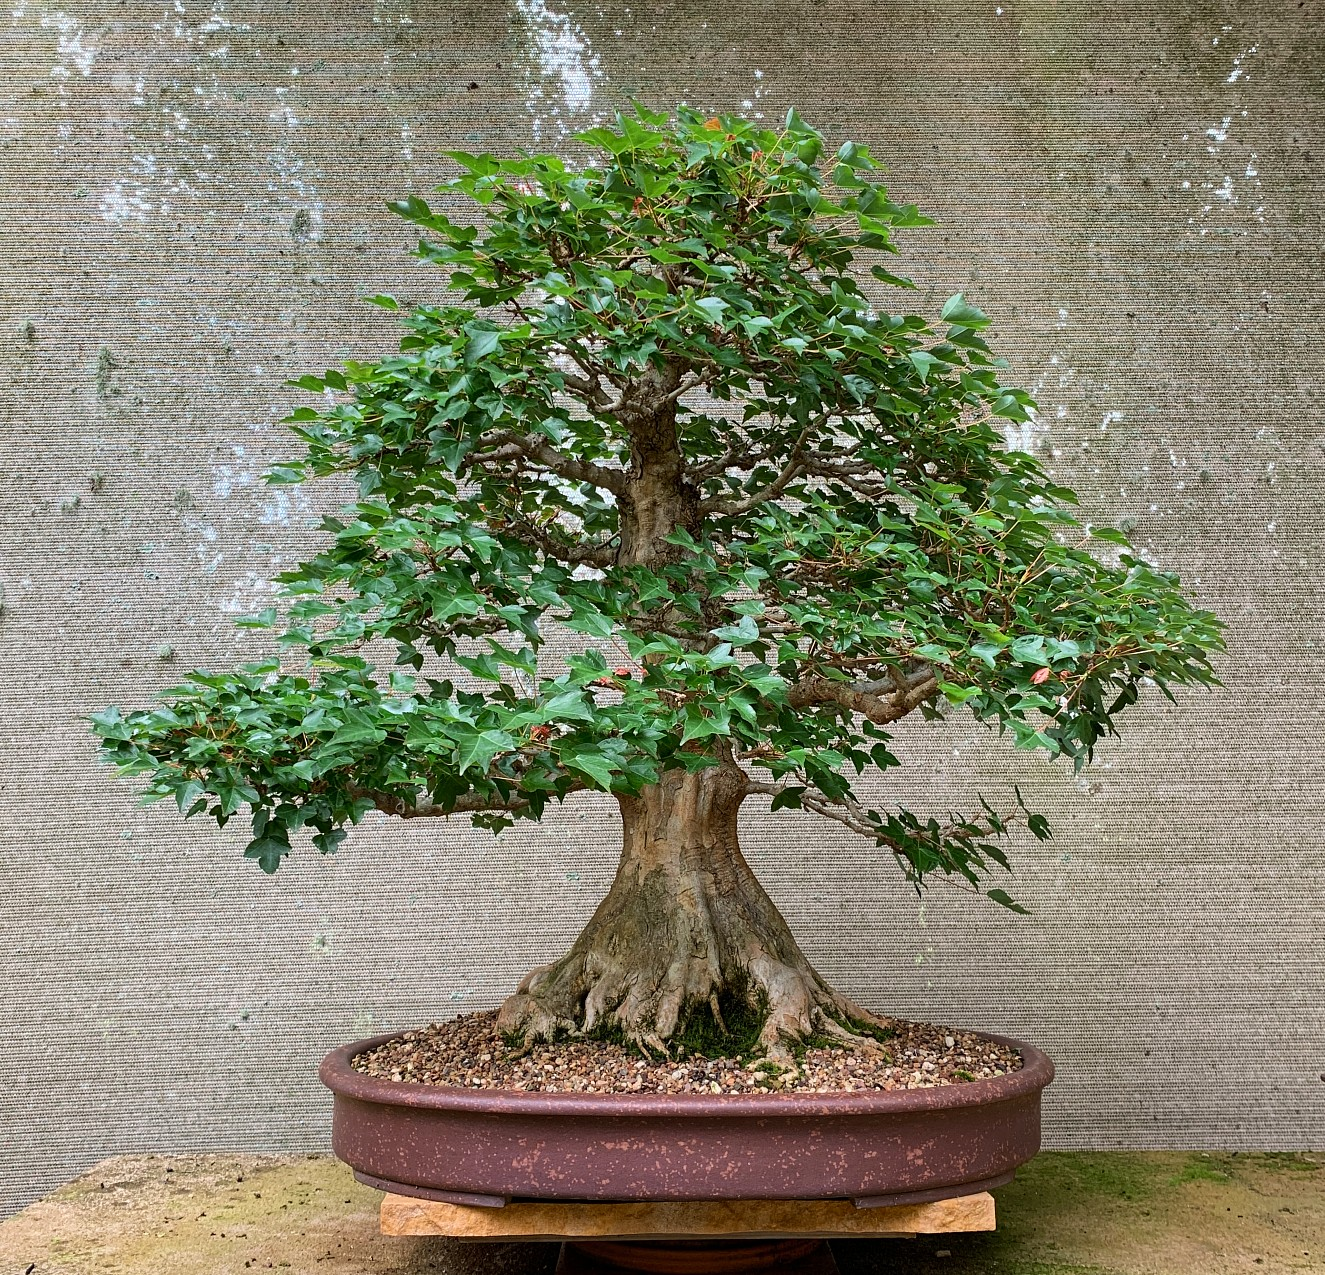 Old Trident Maple - developed from a cutting.